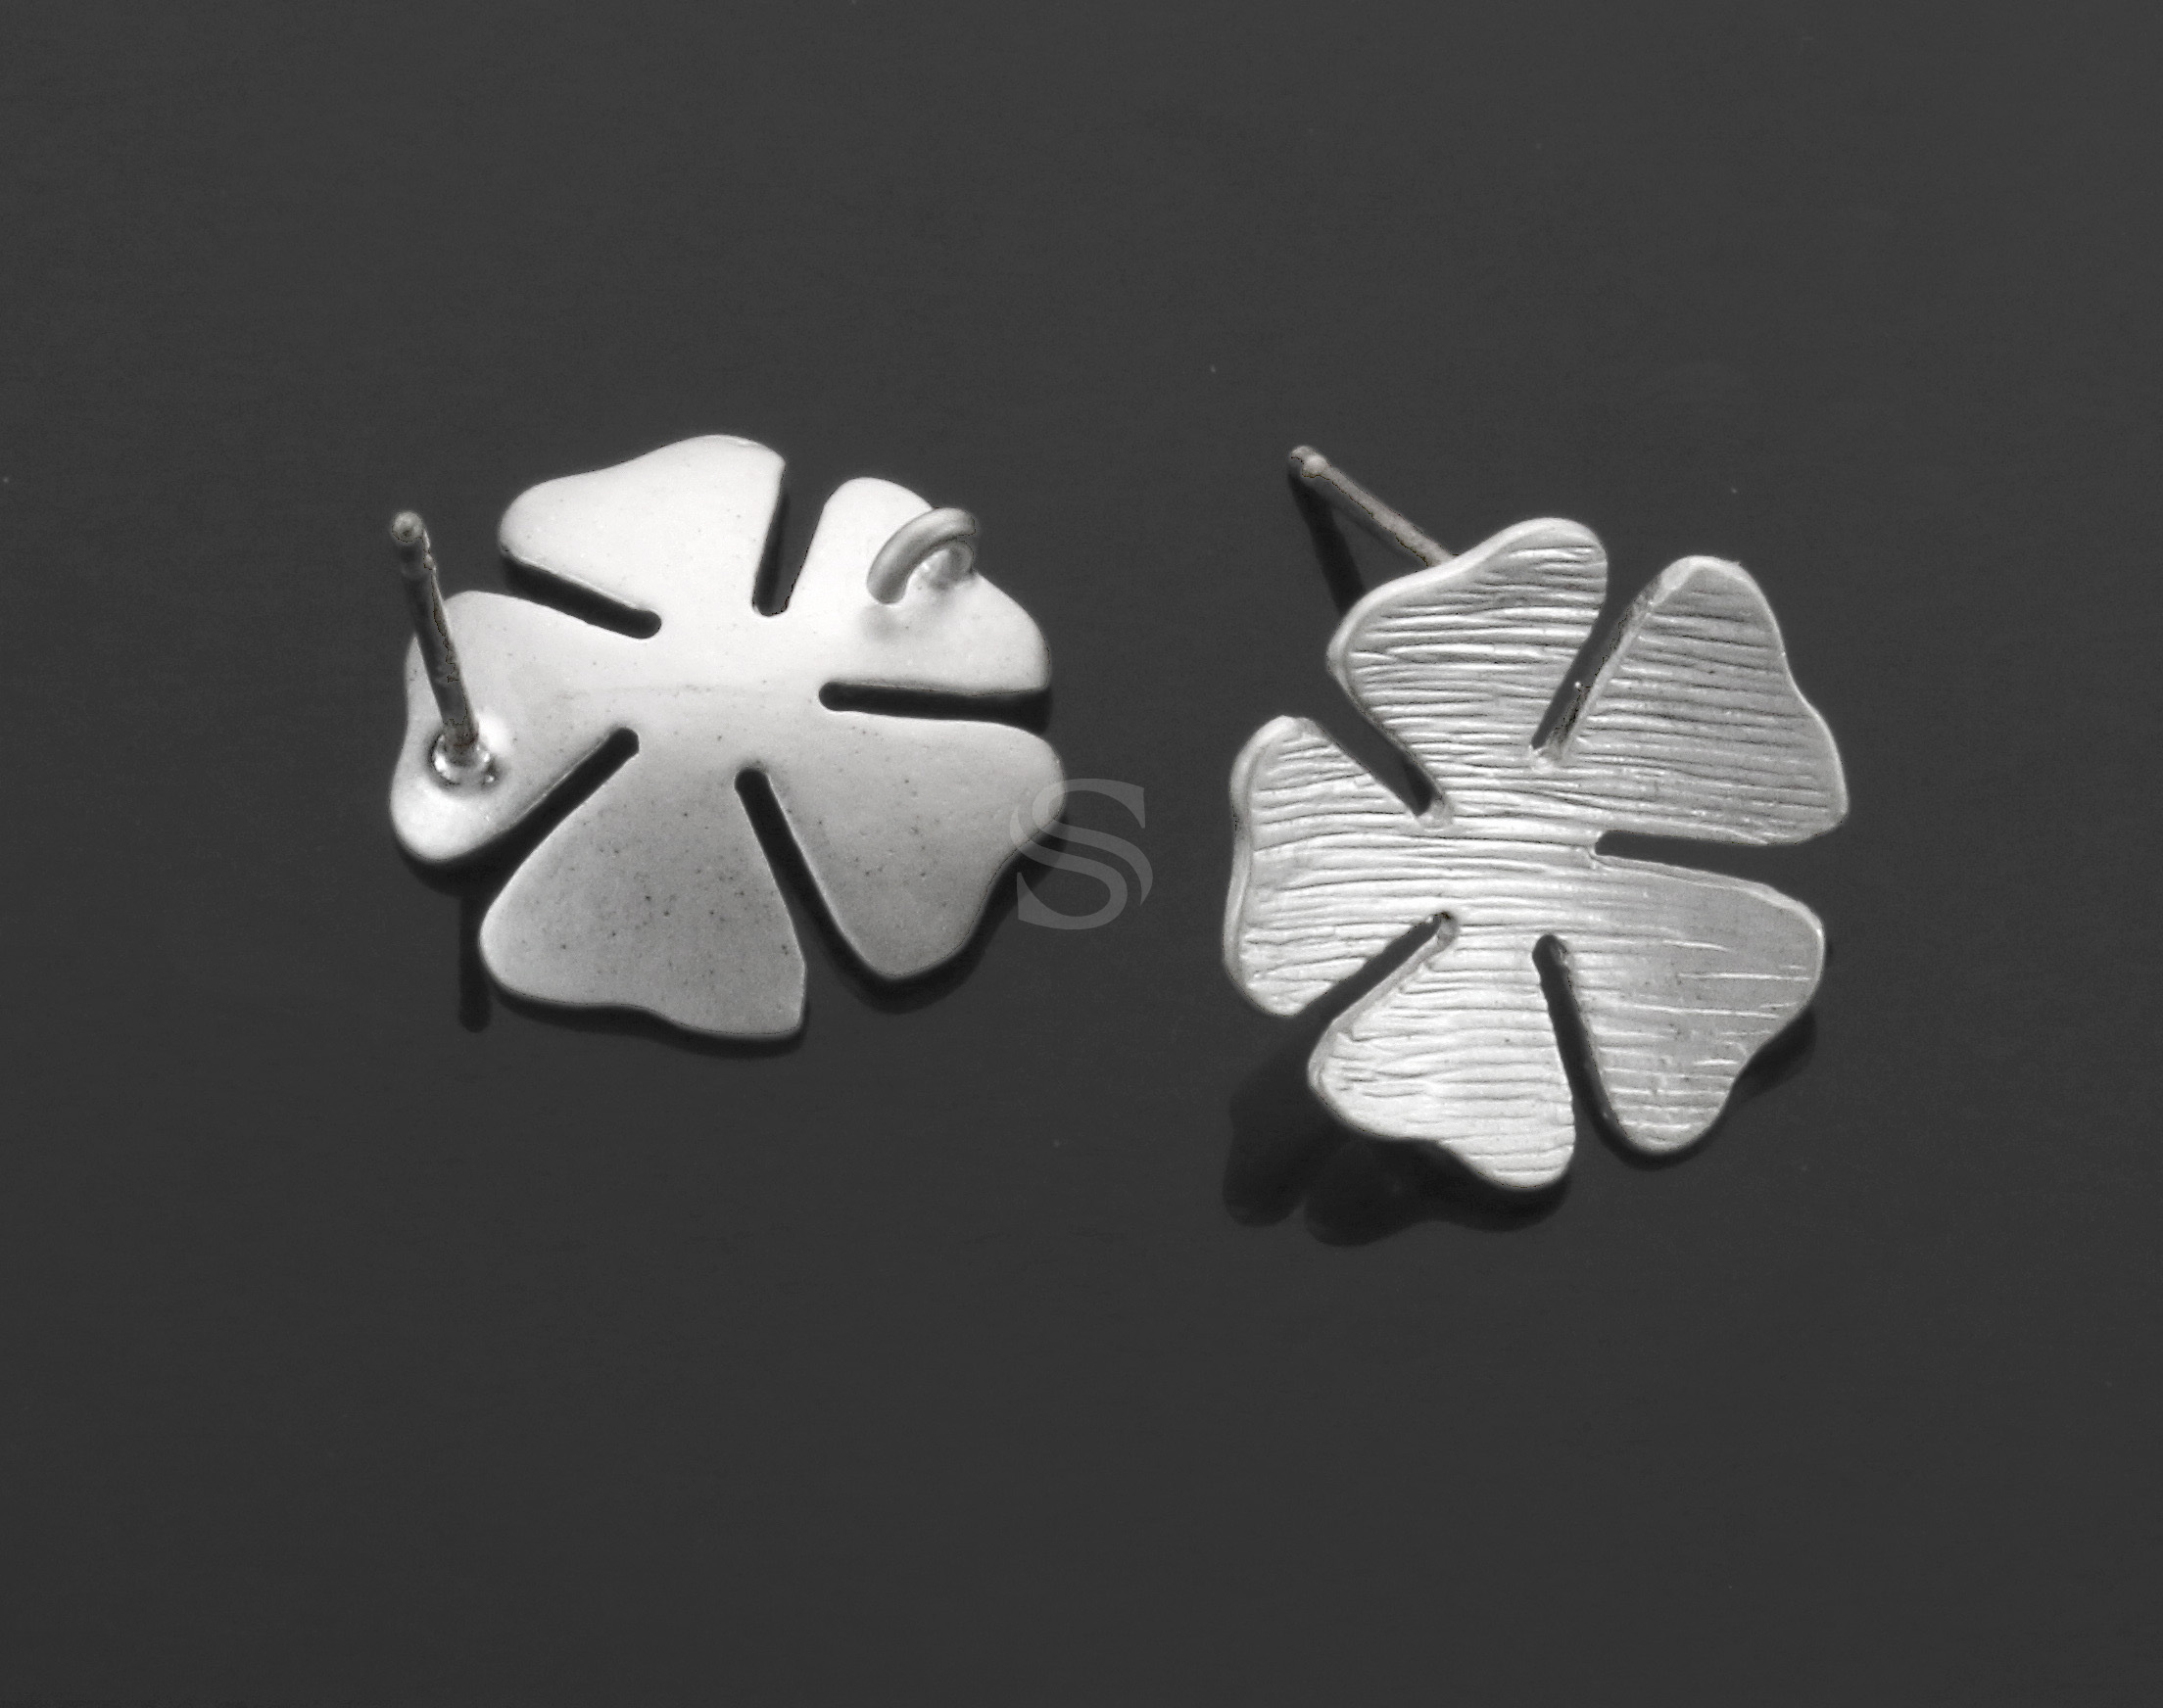 [B1238-E-MS] 2 Pcs / Five Petal Flower Earring / Brass / 13.5mm (Diameter)